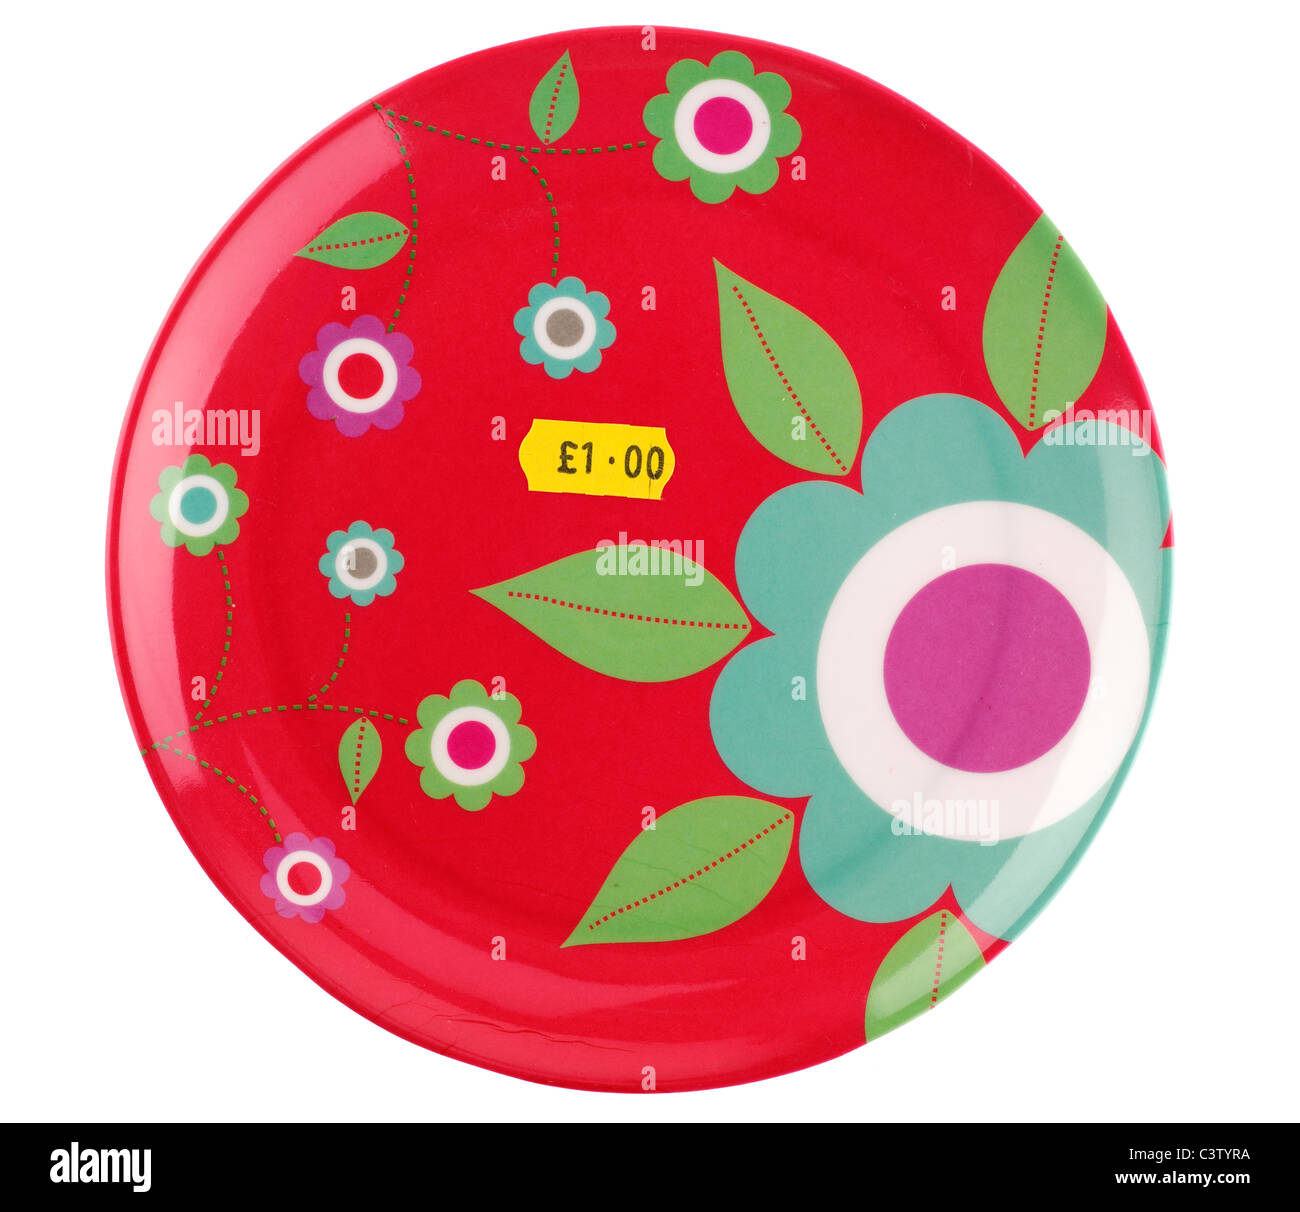 Circular red plastic plate priced at one pound - Stock Image